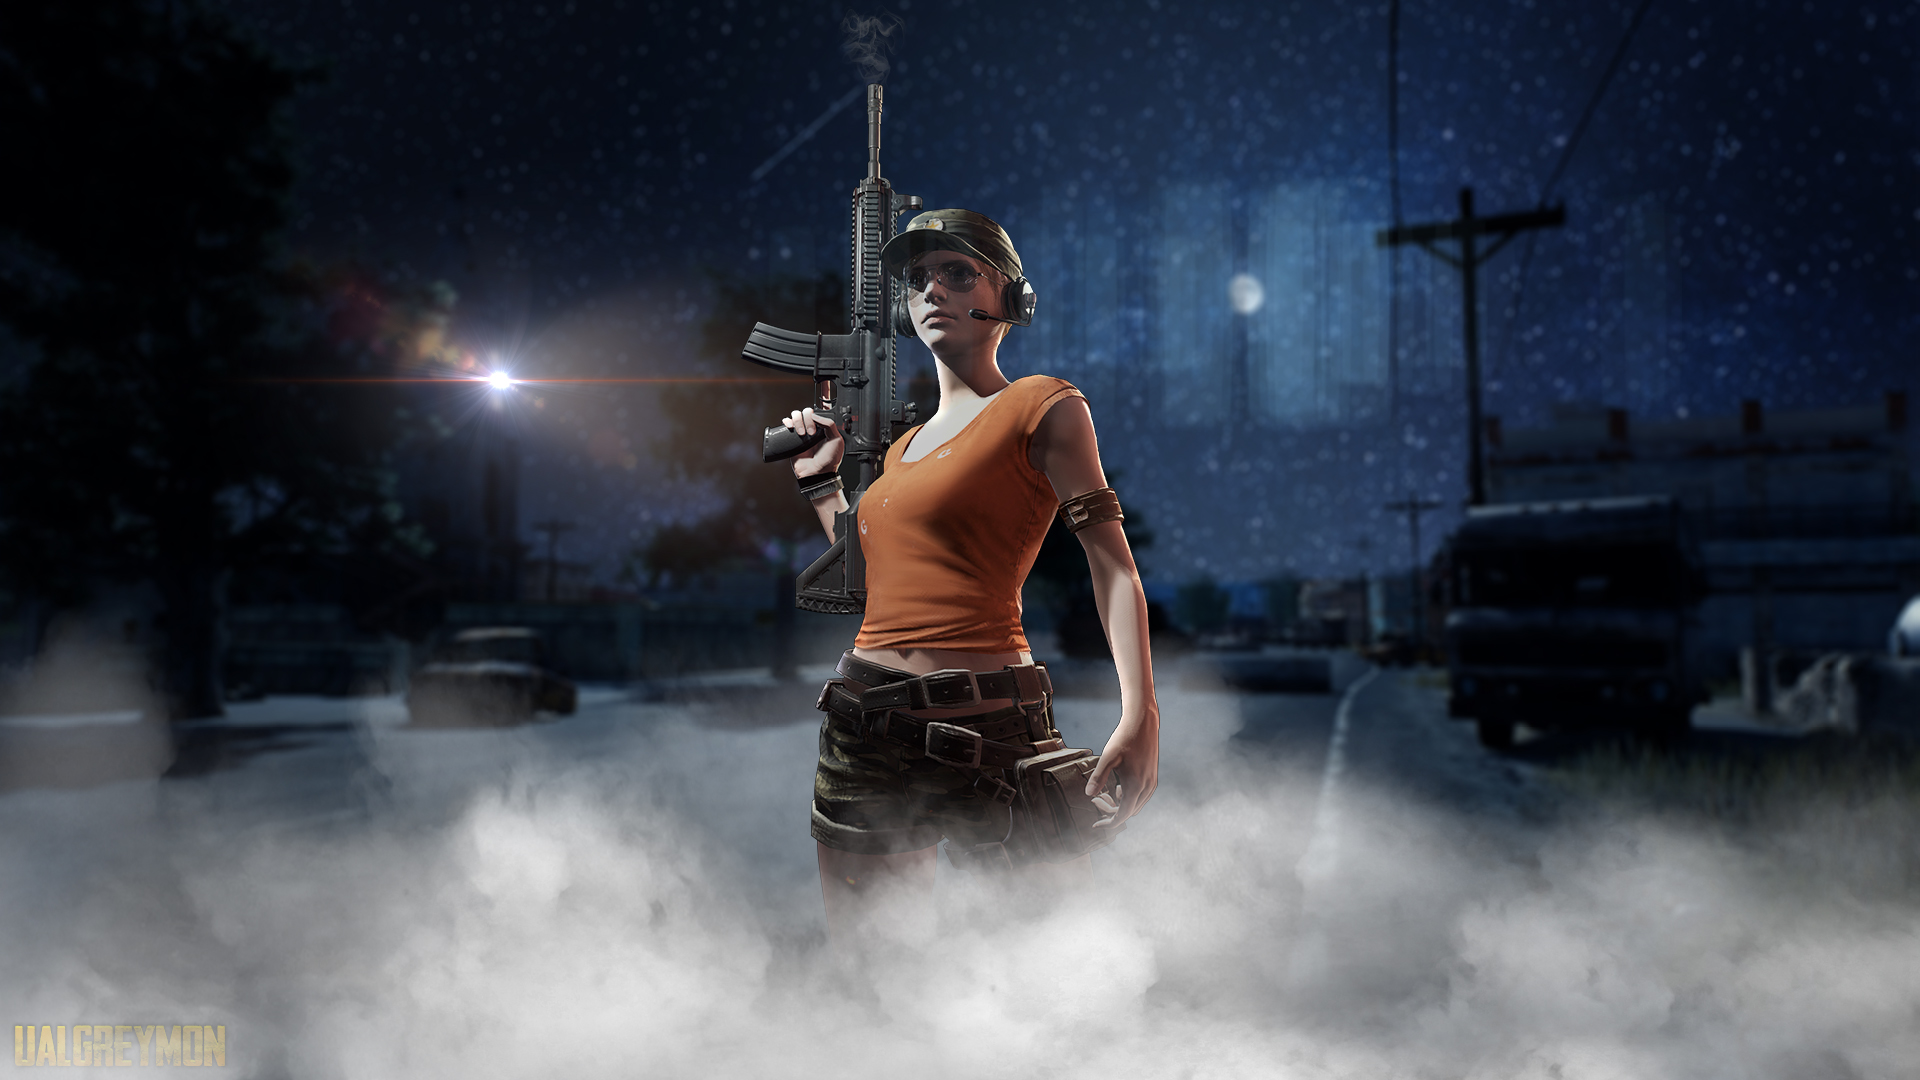 Pubg Wallpapers Hd Mobile: Pubg Night, HD Games, 4k Wallpapers, Images, Backgrounds